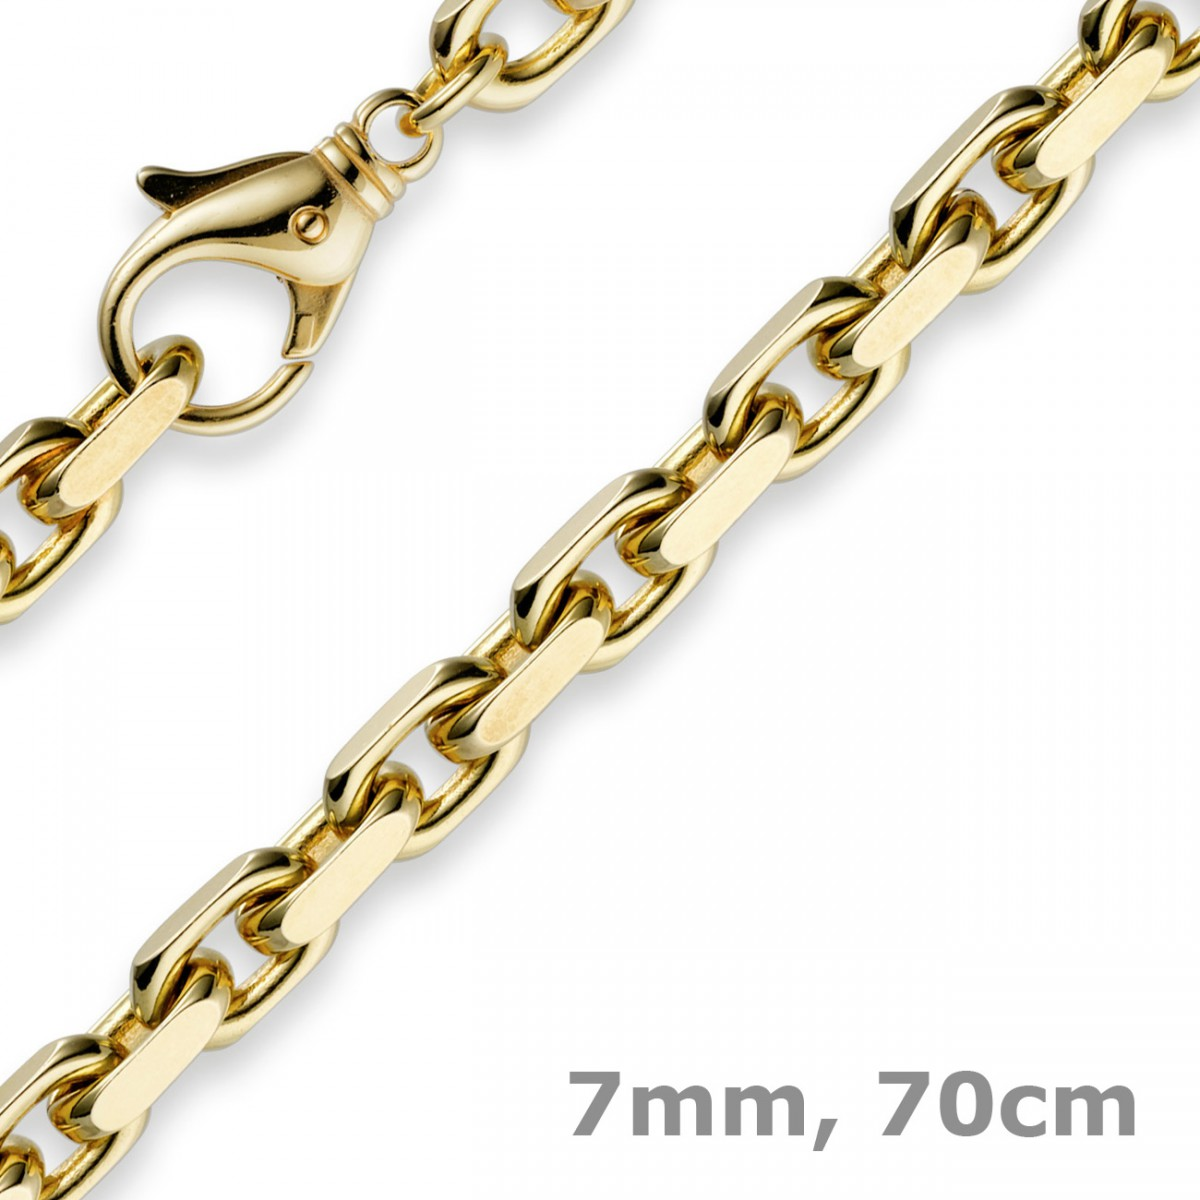 7mm Necklace Anchor Chain 585 Gold Yellow Gold, 70cm, Gold Chain for Men  4053642163295 | eBay